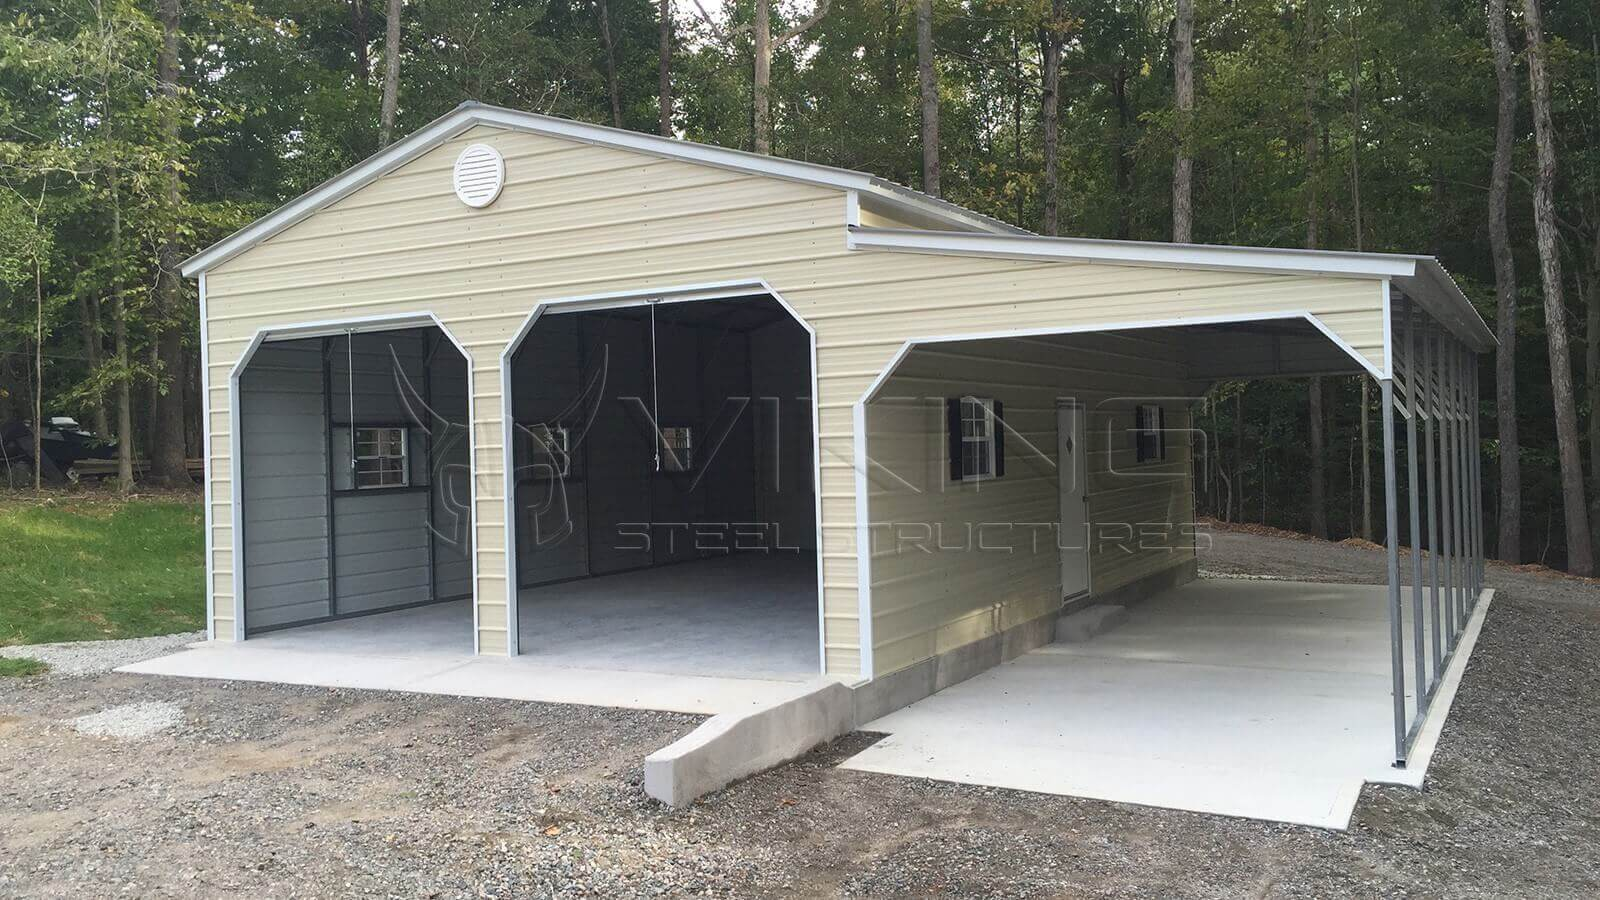 viking steel structures metal carports barns garages rv covers. Black Bedroom Furniture Sets. Home Design Ideas